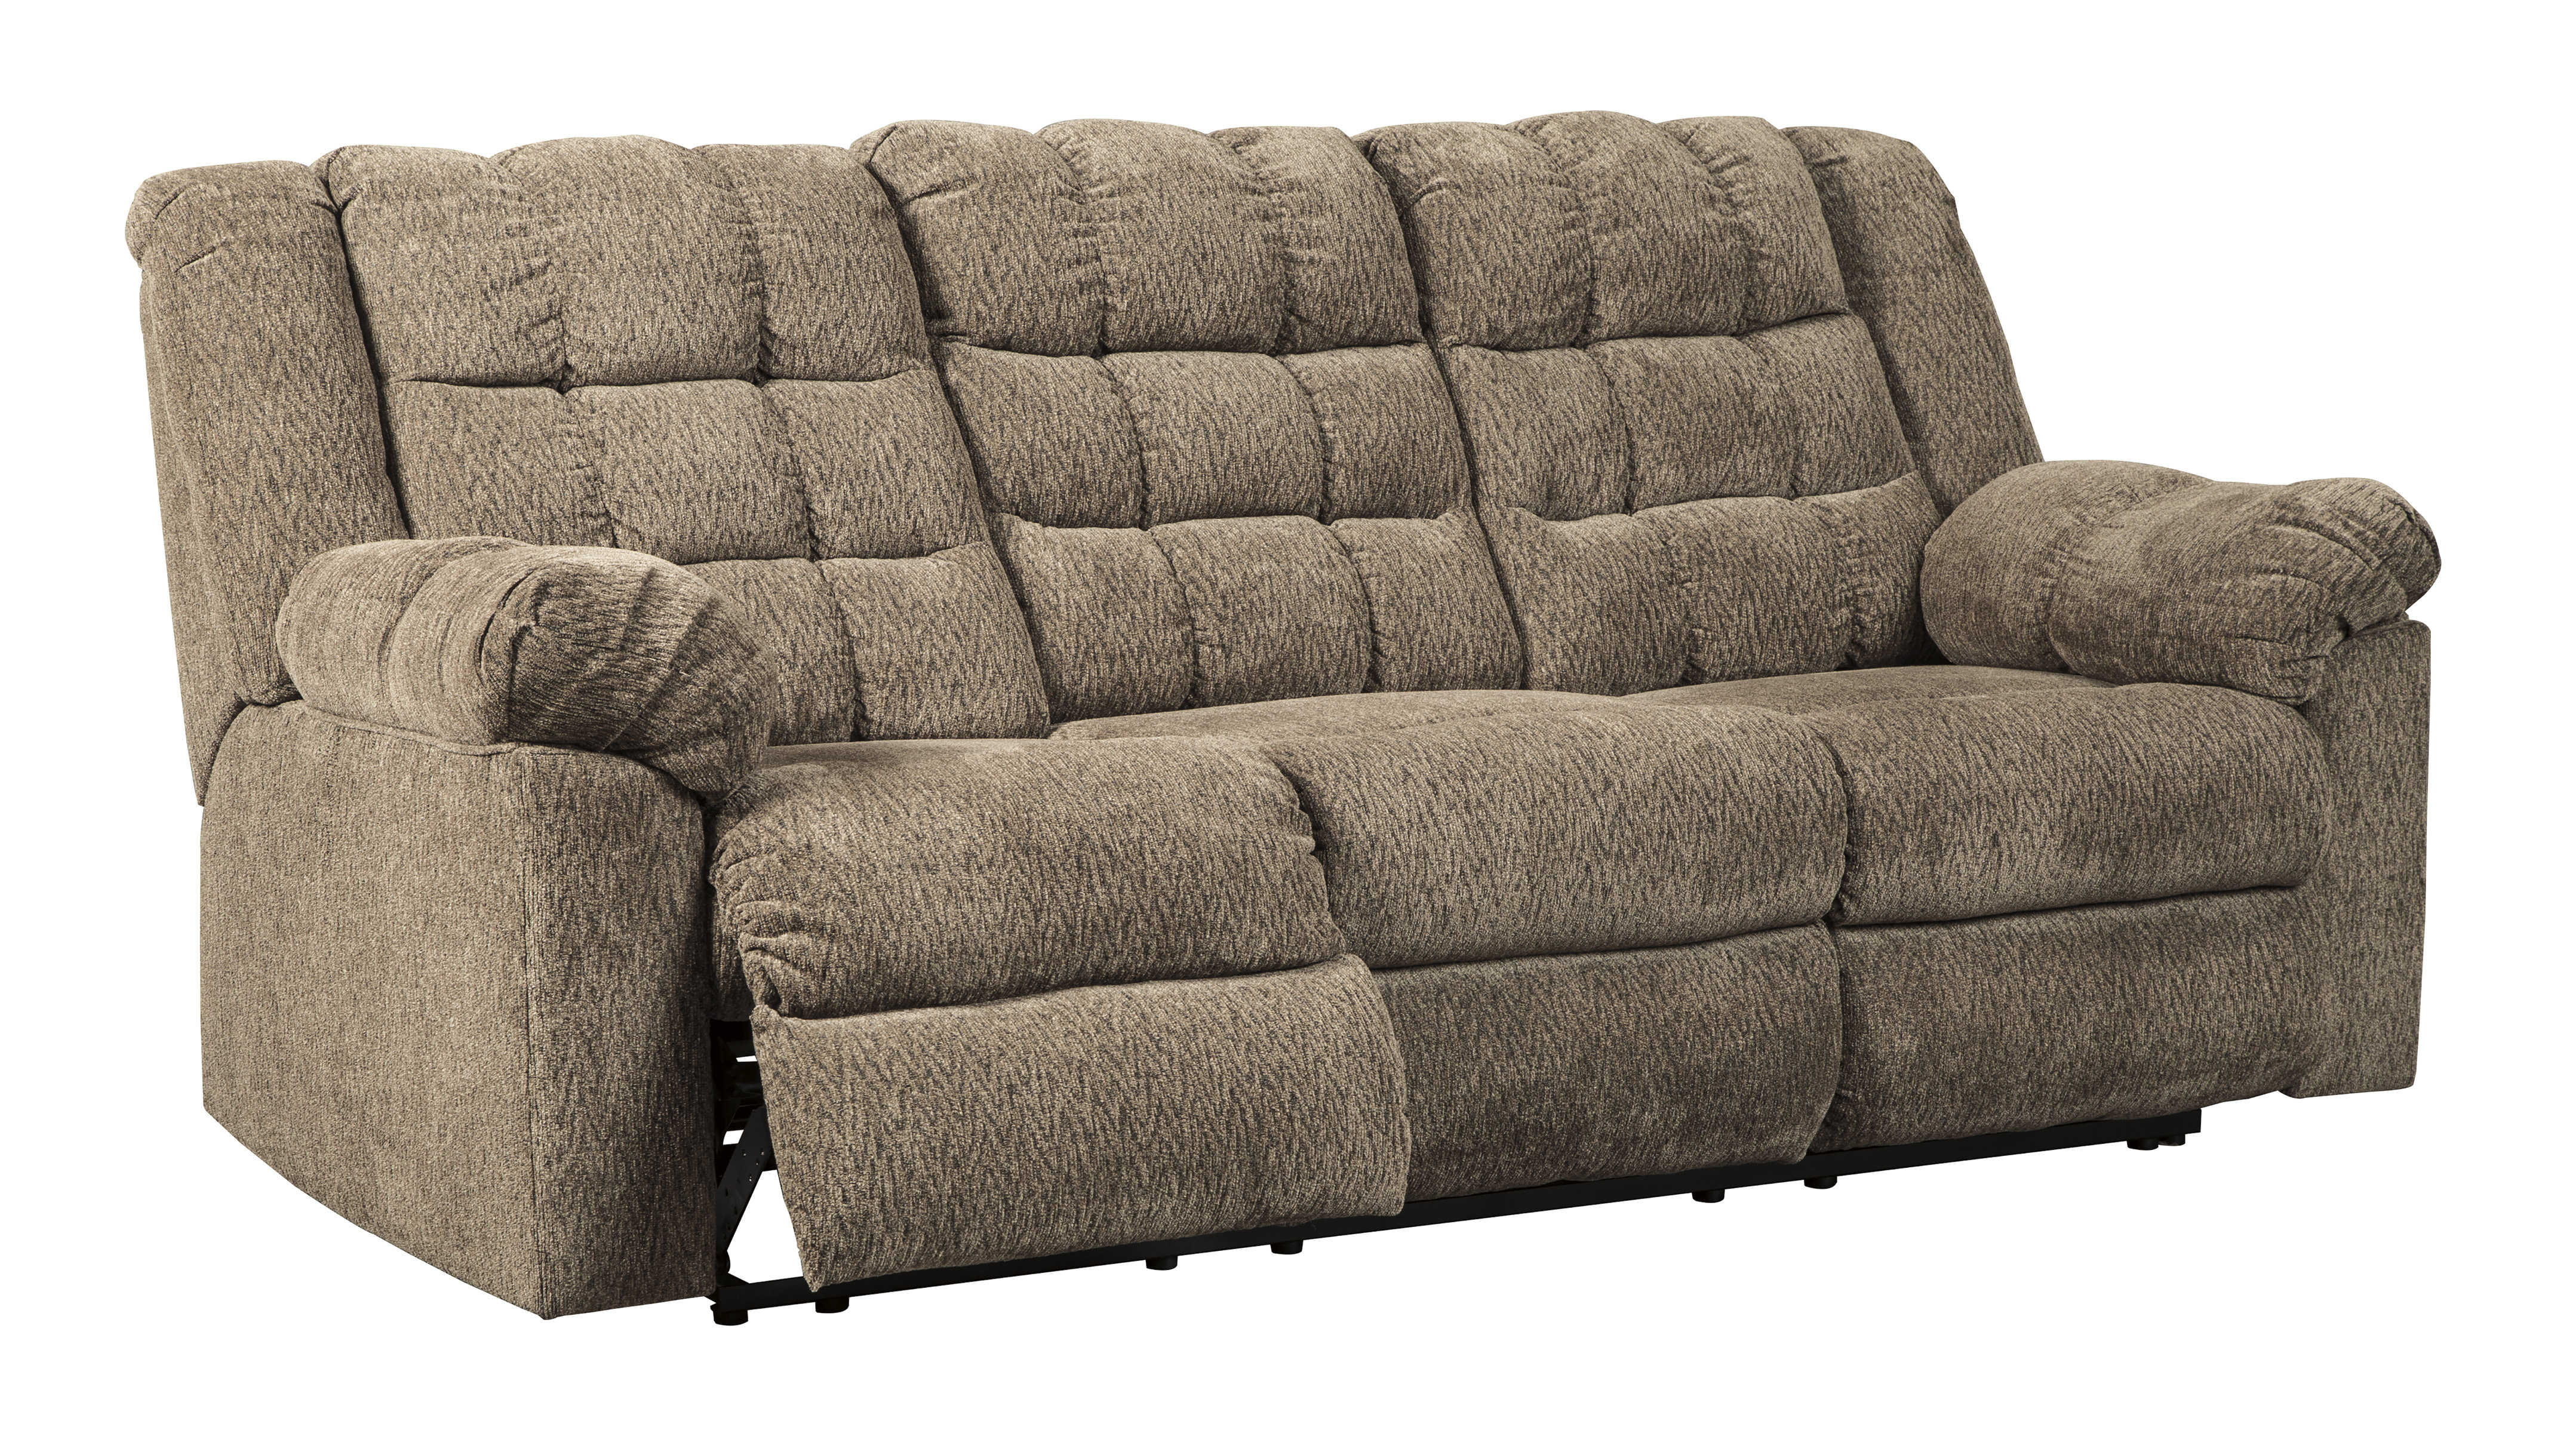 Ashley Furniture Workhorse Reclining Sofa Click To Enlarge